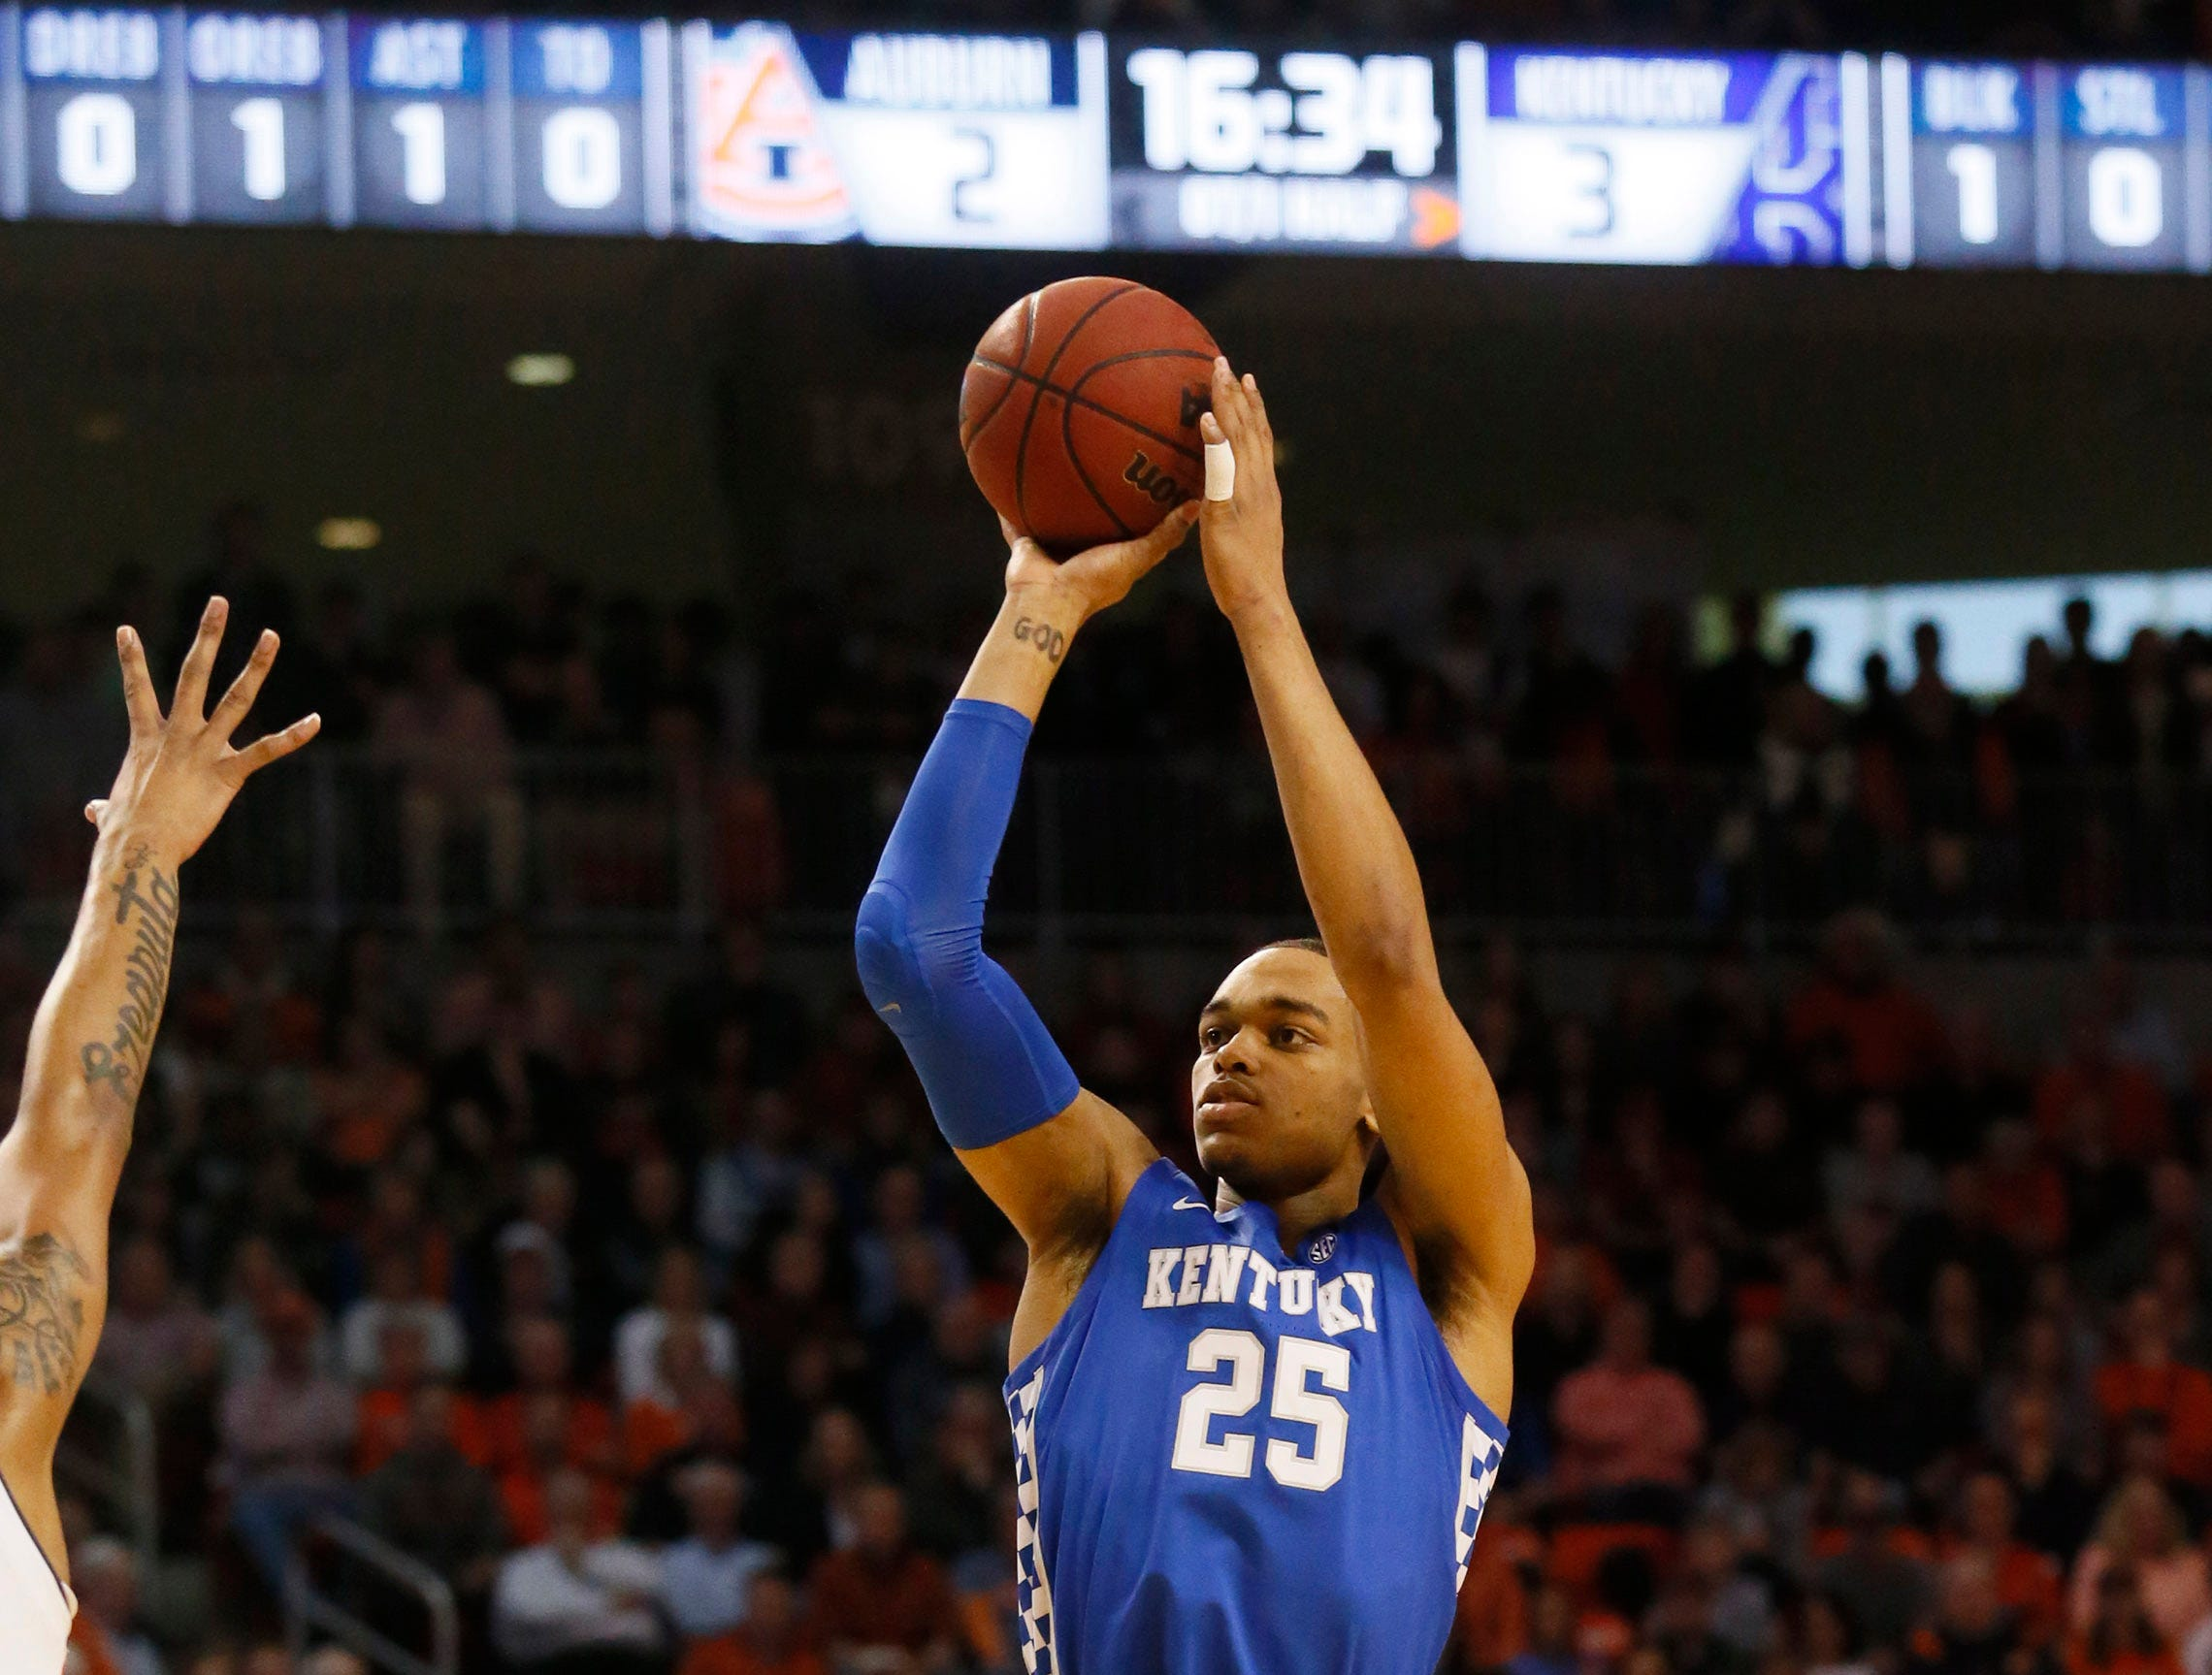 Jan 19, 2019; Auburn, AL, USA; Kentucky Wildcats forward PJ Washington (25) takes a shot against the Auburn Tigers during the first half at Auburn Arena. Mandatory Credit: John Reed-USA TODAY Sports